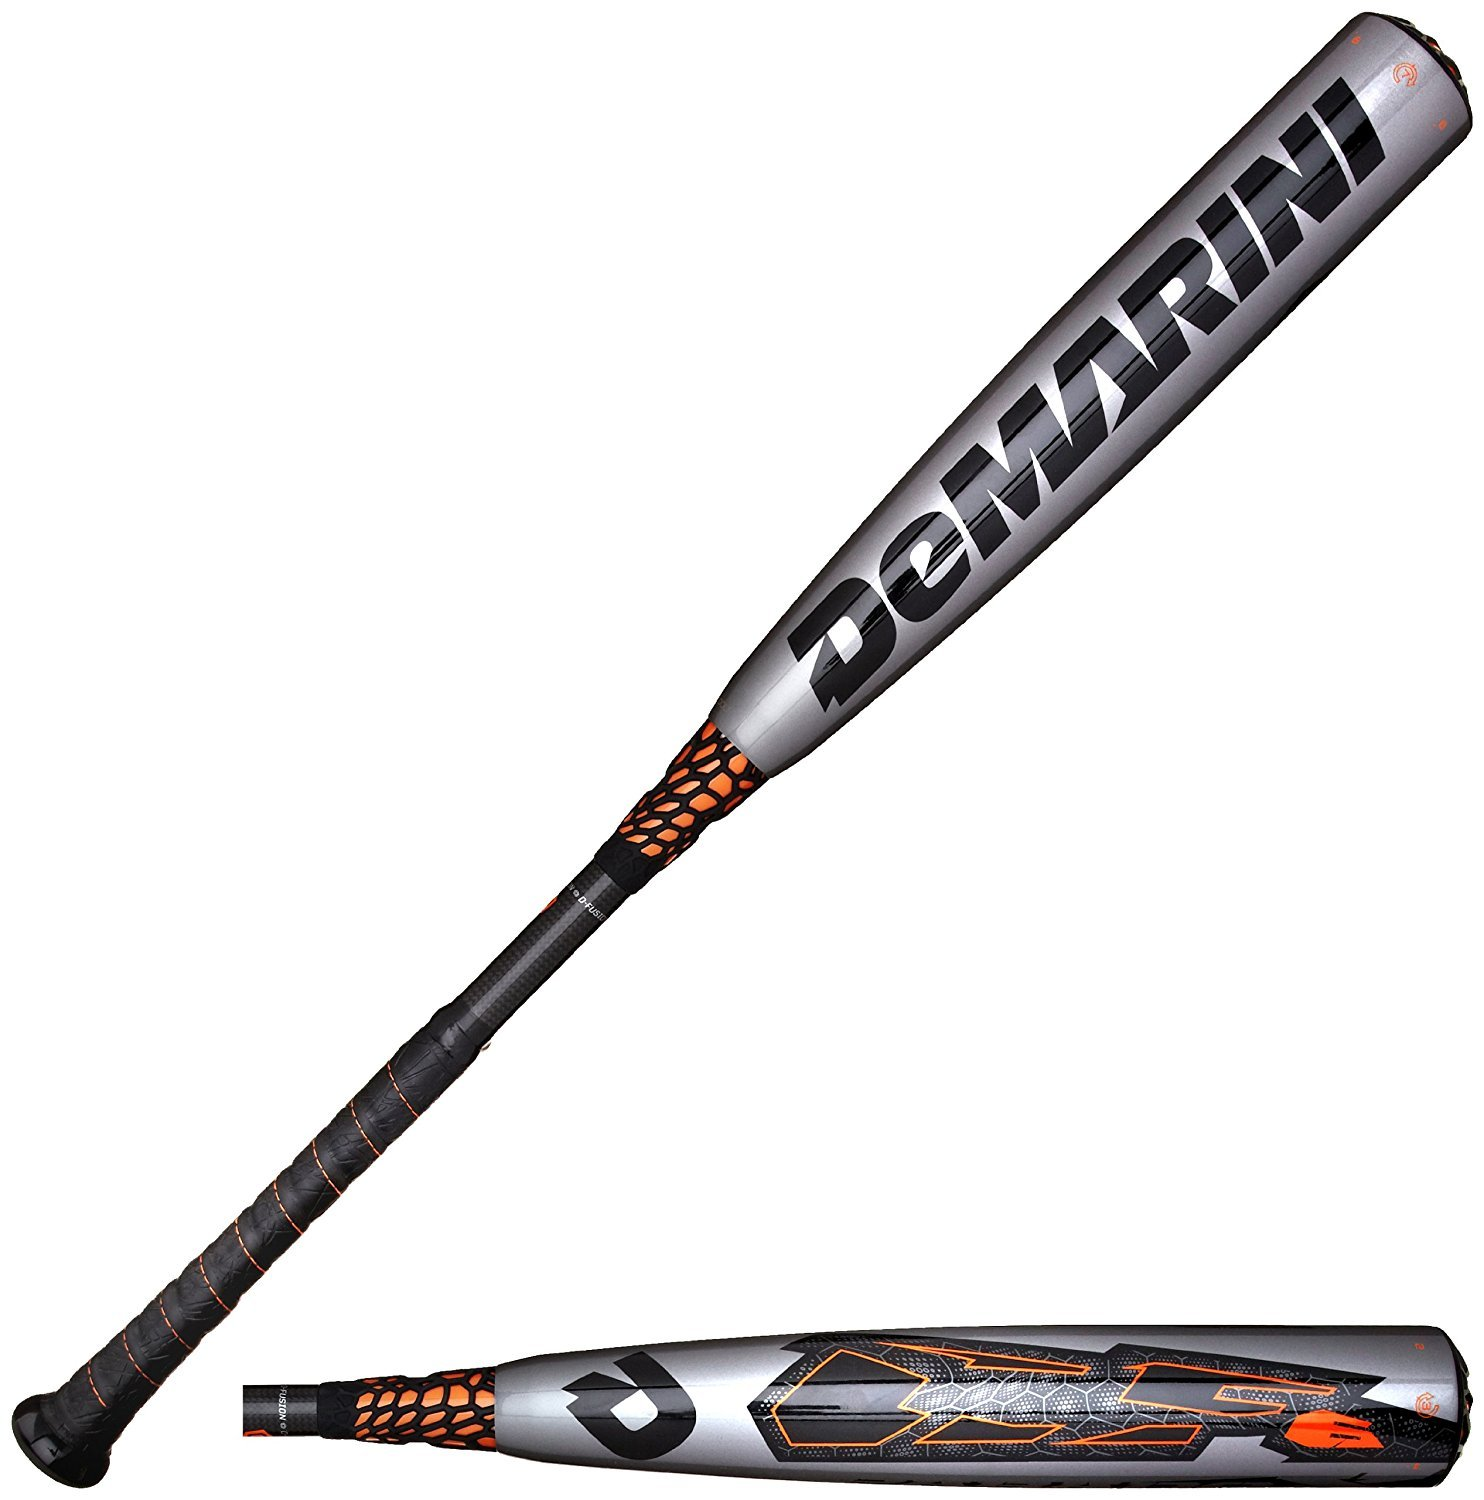 DeMarini CF6 Baseball Bat Review